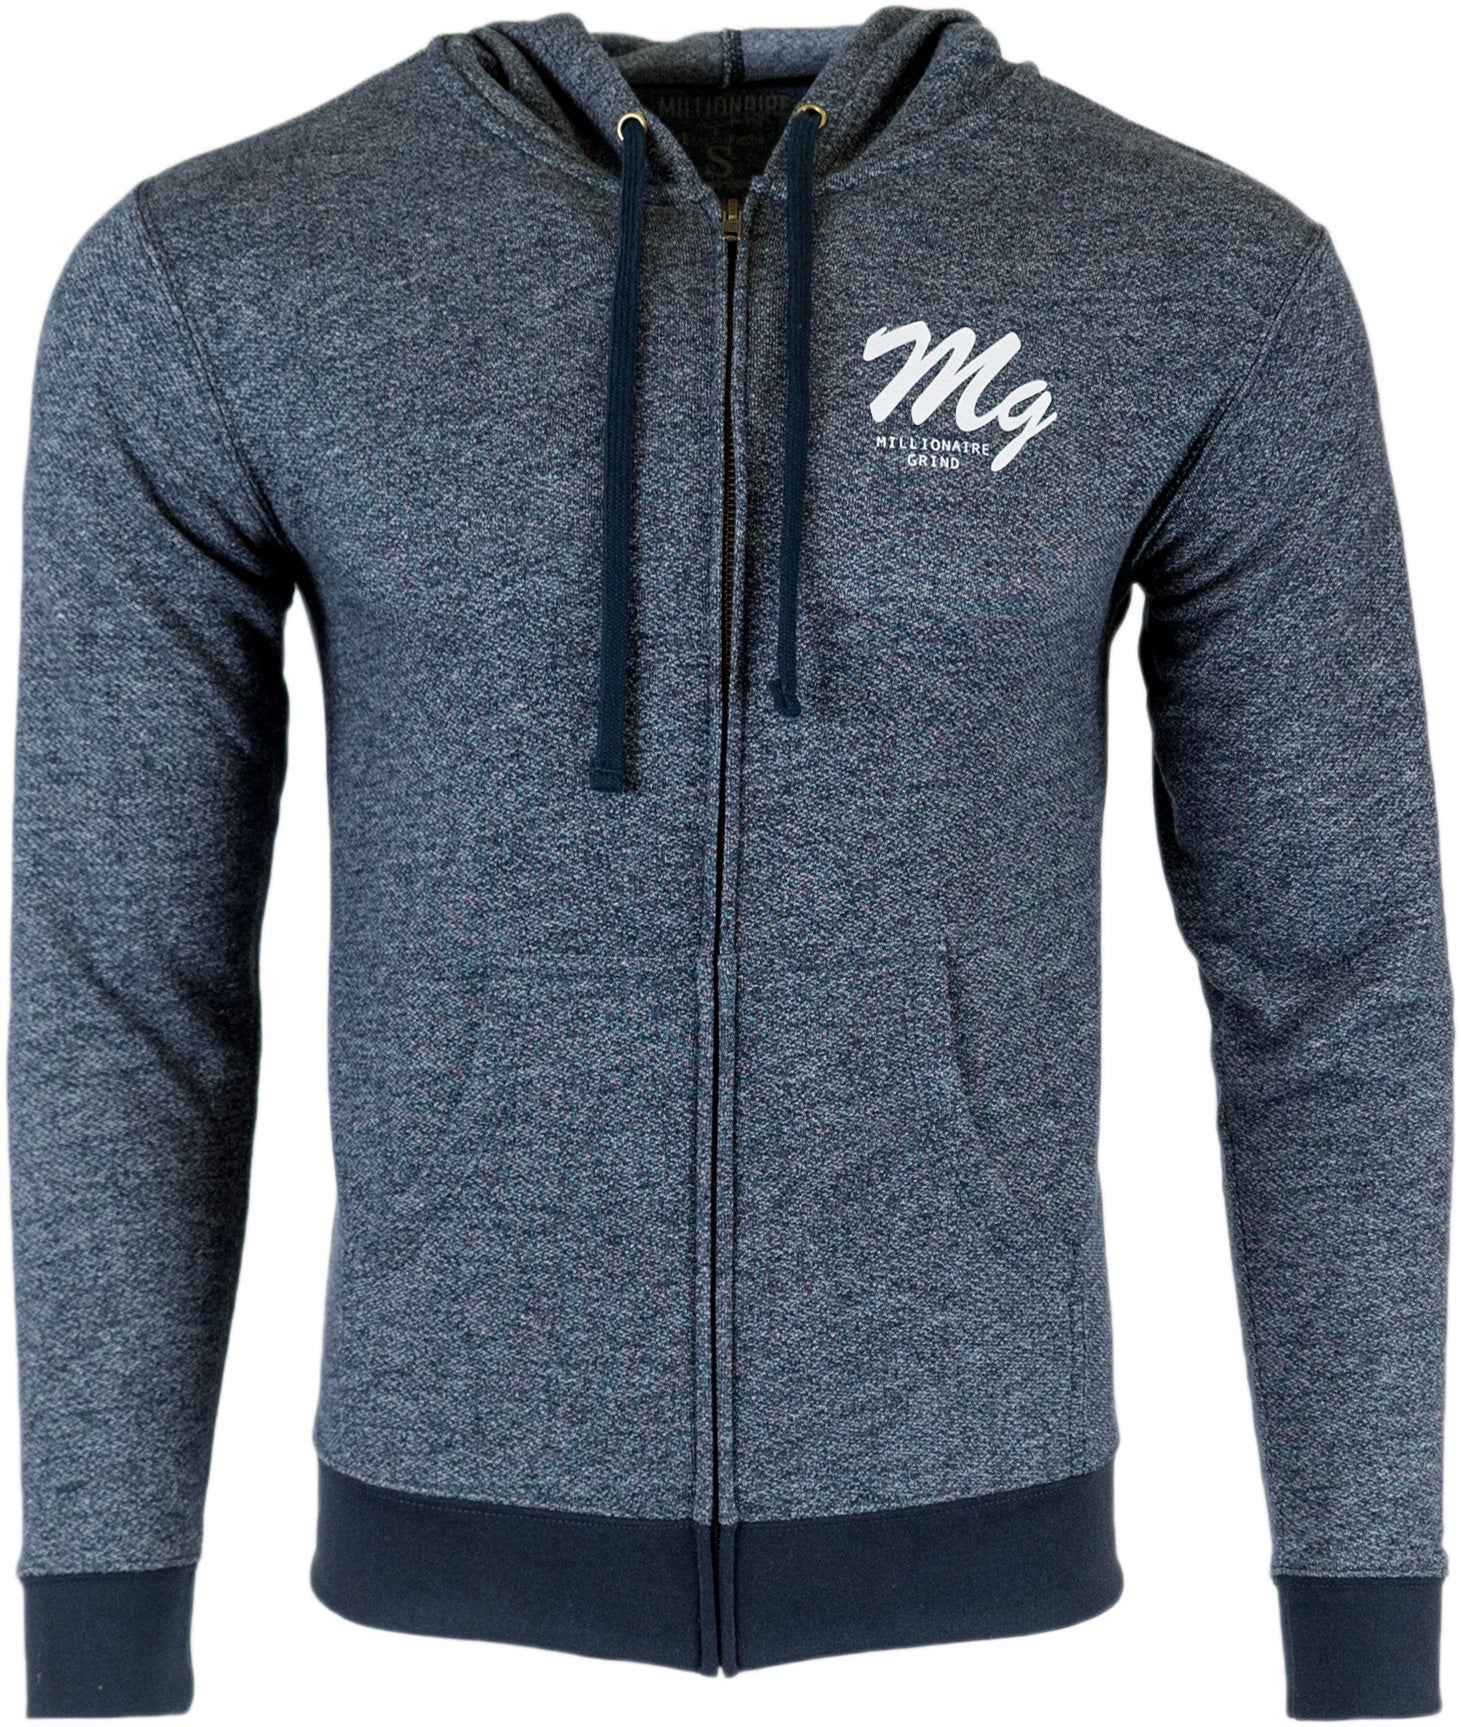 MG Denim Fleece Zip Hoody - Navy